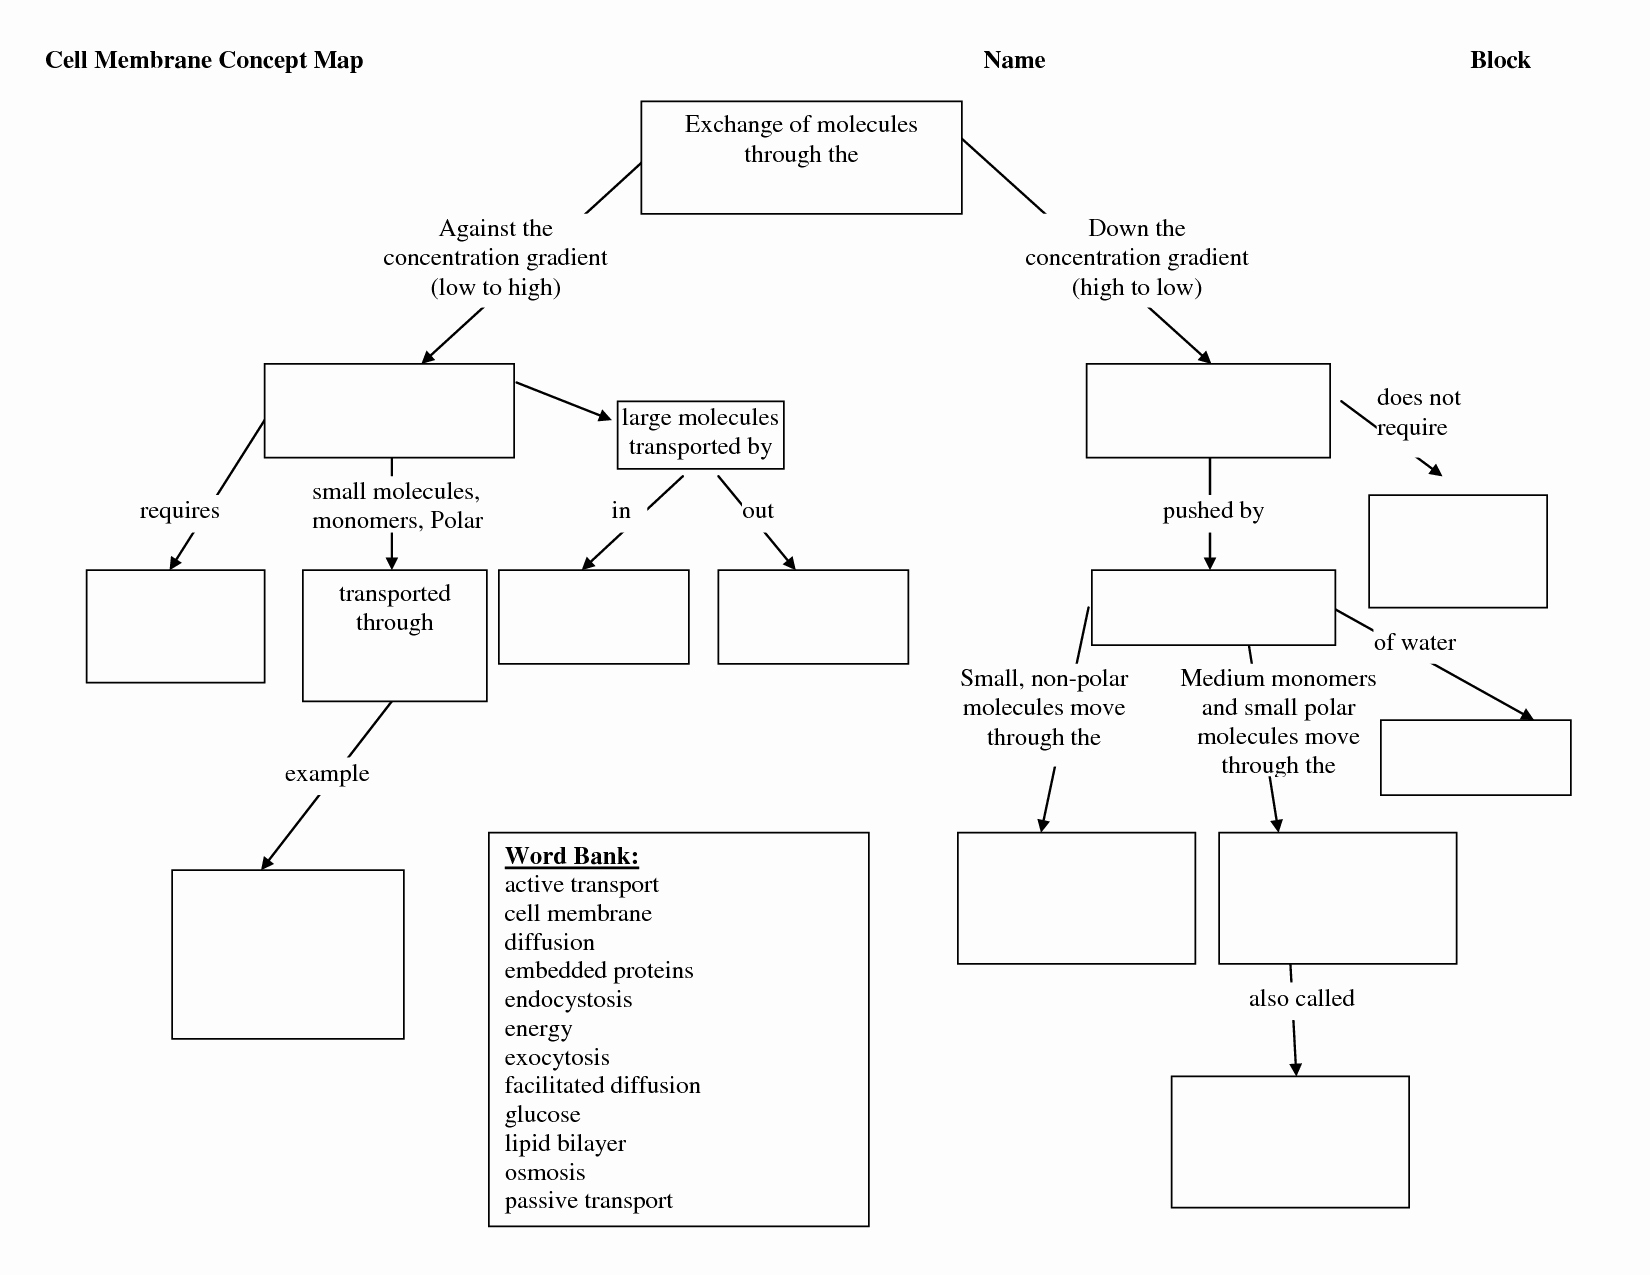 Cell Concept Map Worksheet Answers Lovely Synthesis Concept Map Worksheet Answers